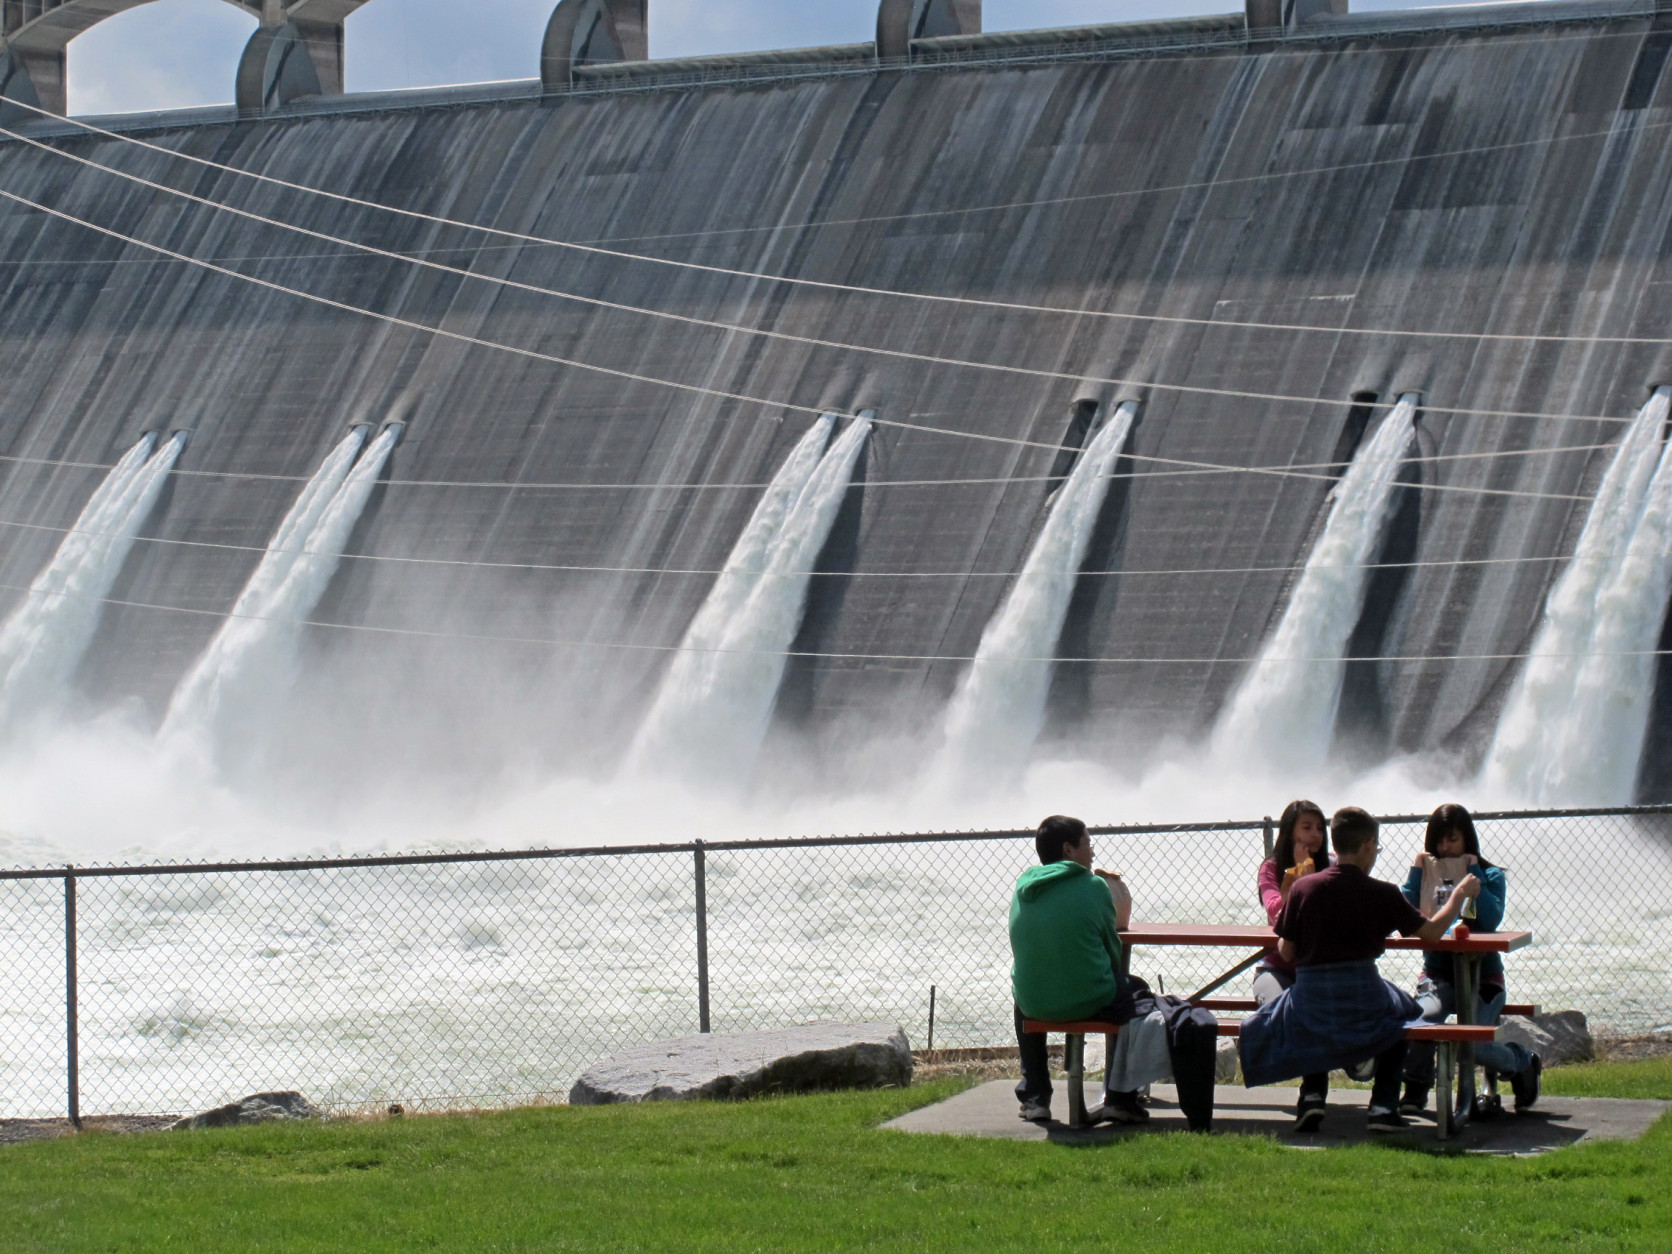 FILE - In this June 1, 2011 file photo, students on a field trip eat lunch as water is released from Grand Coulee Dam, Wash. The Grand Coulee Dam, a product of the Great Depression, is getting a major facelift as federal operators seek to squeeze even more power out of the nation's largest hydroelectric dam. (AP Photo/Nicholas K. Geranios)